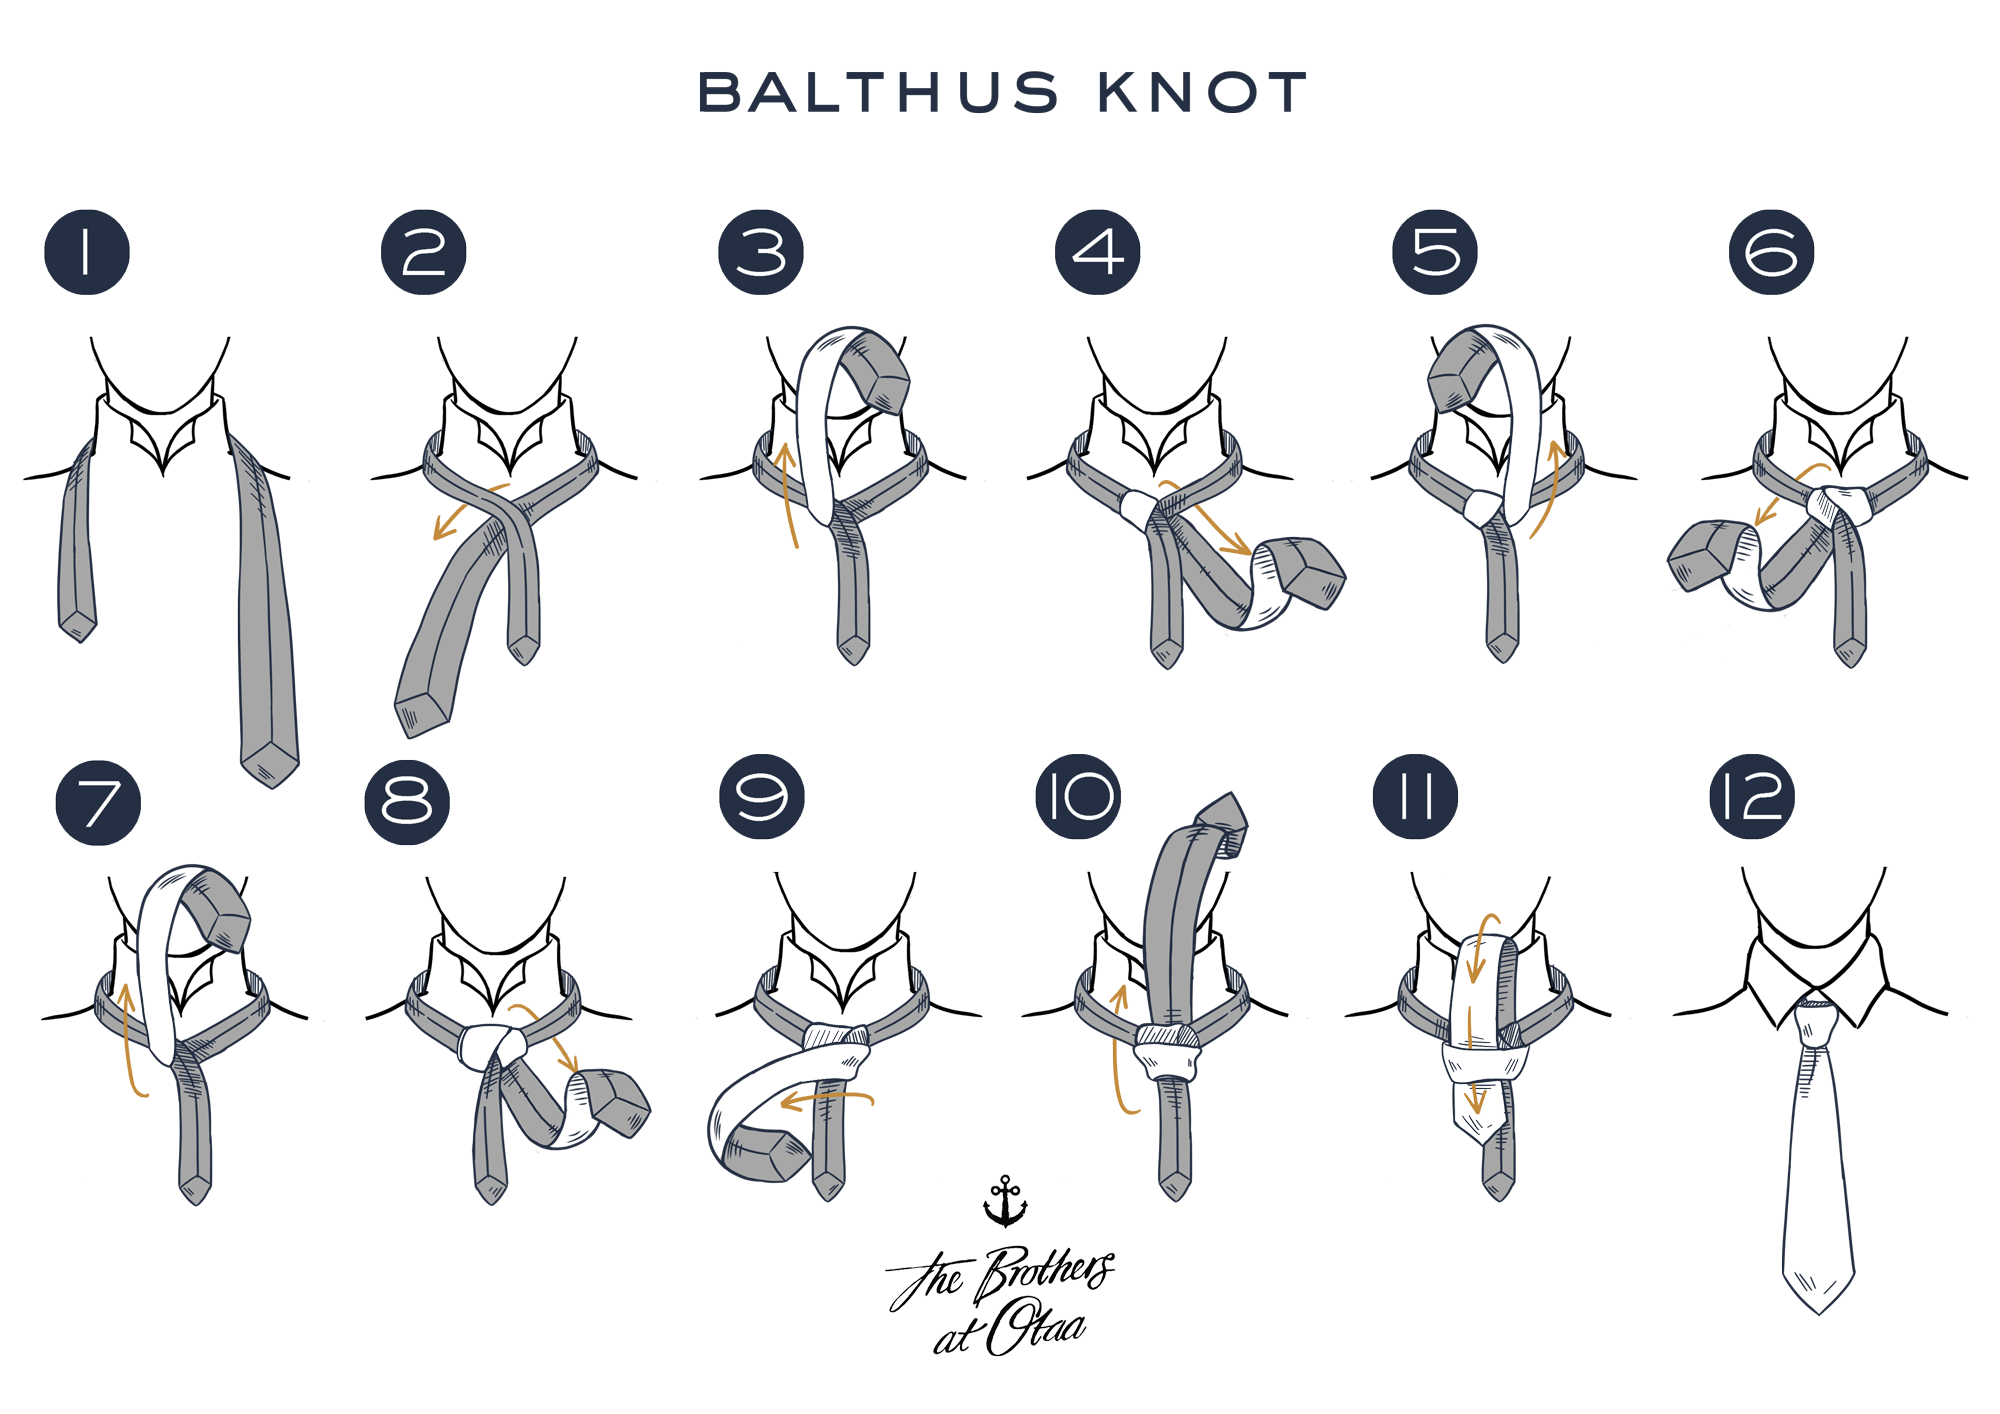 How To Tie a Balthus Knot - steps